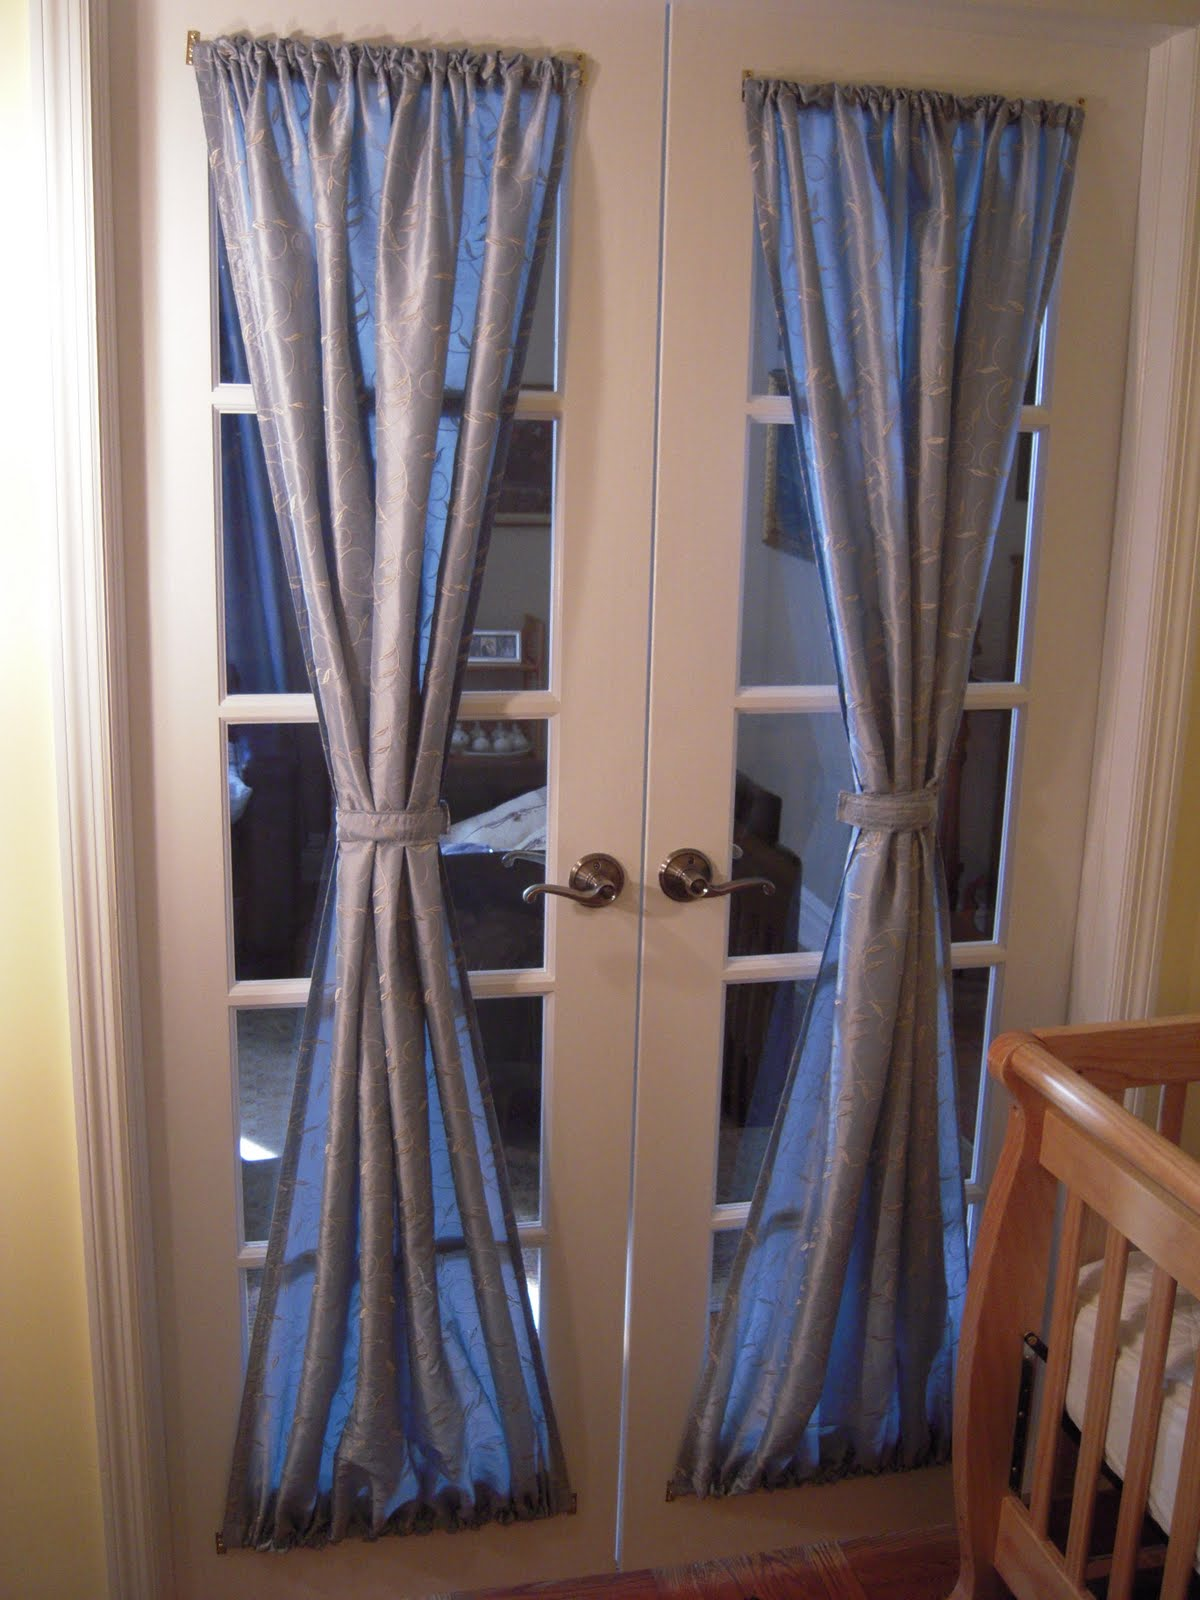 exquisite french door curtains ideas | Charing-X: Curtains for French Doors – Some New Ideas